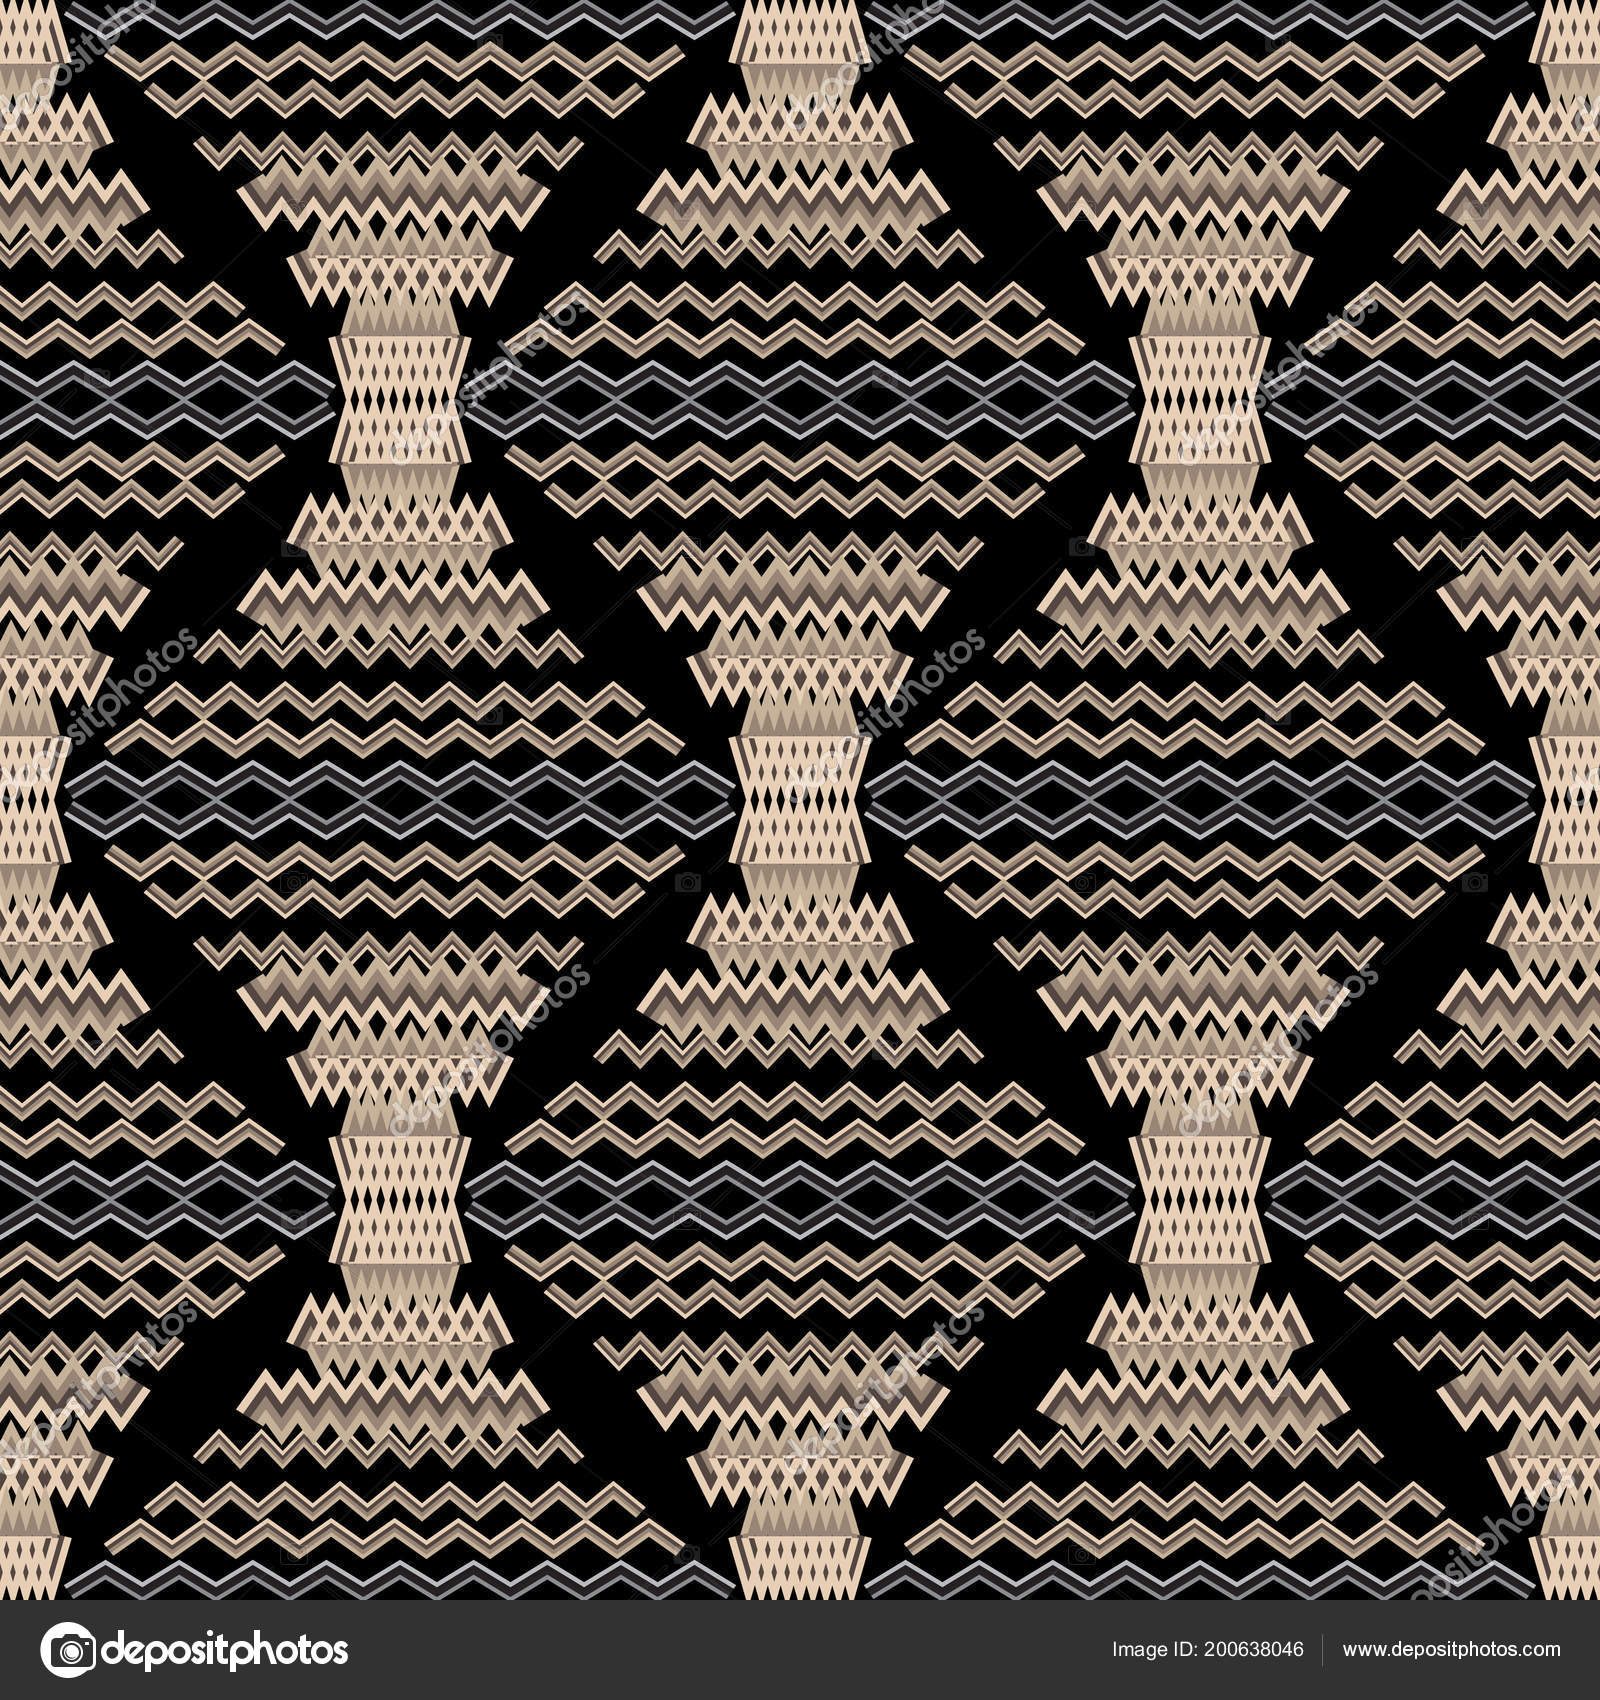 Zigzag Modern Vector Seamless Pattern Geometric Abstract Ornamental Background Creative